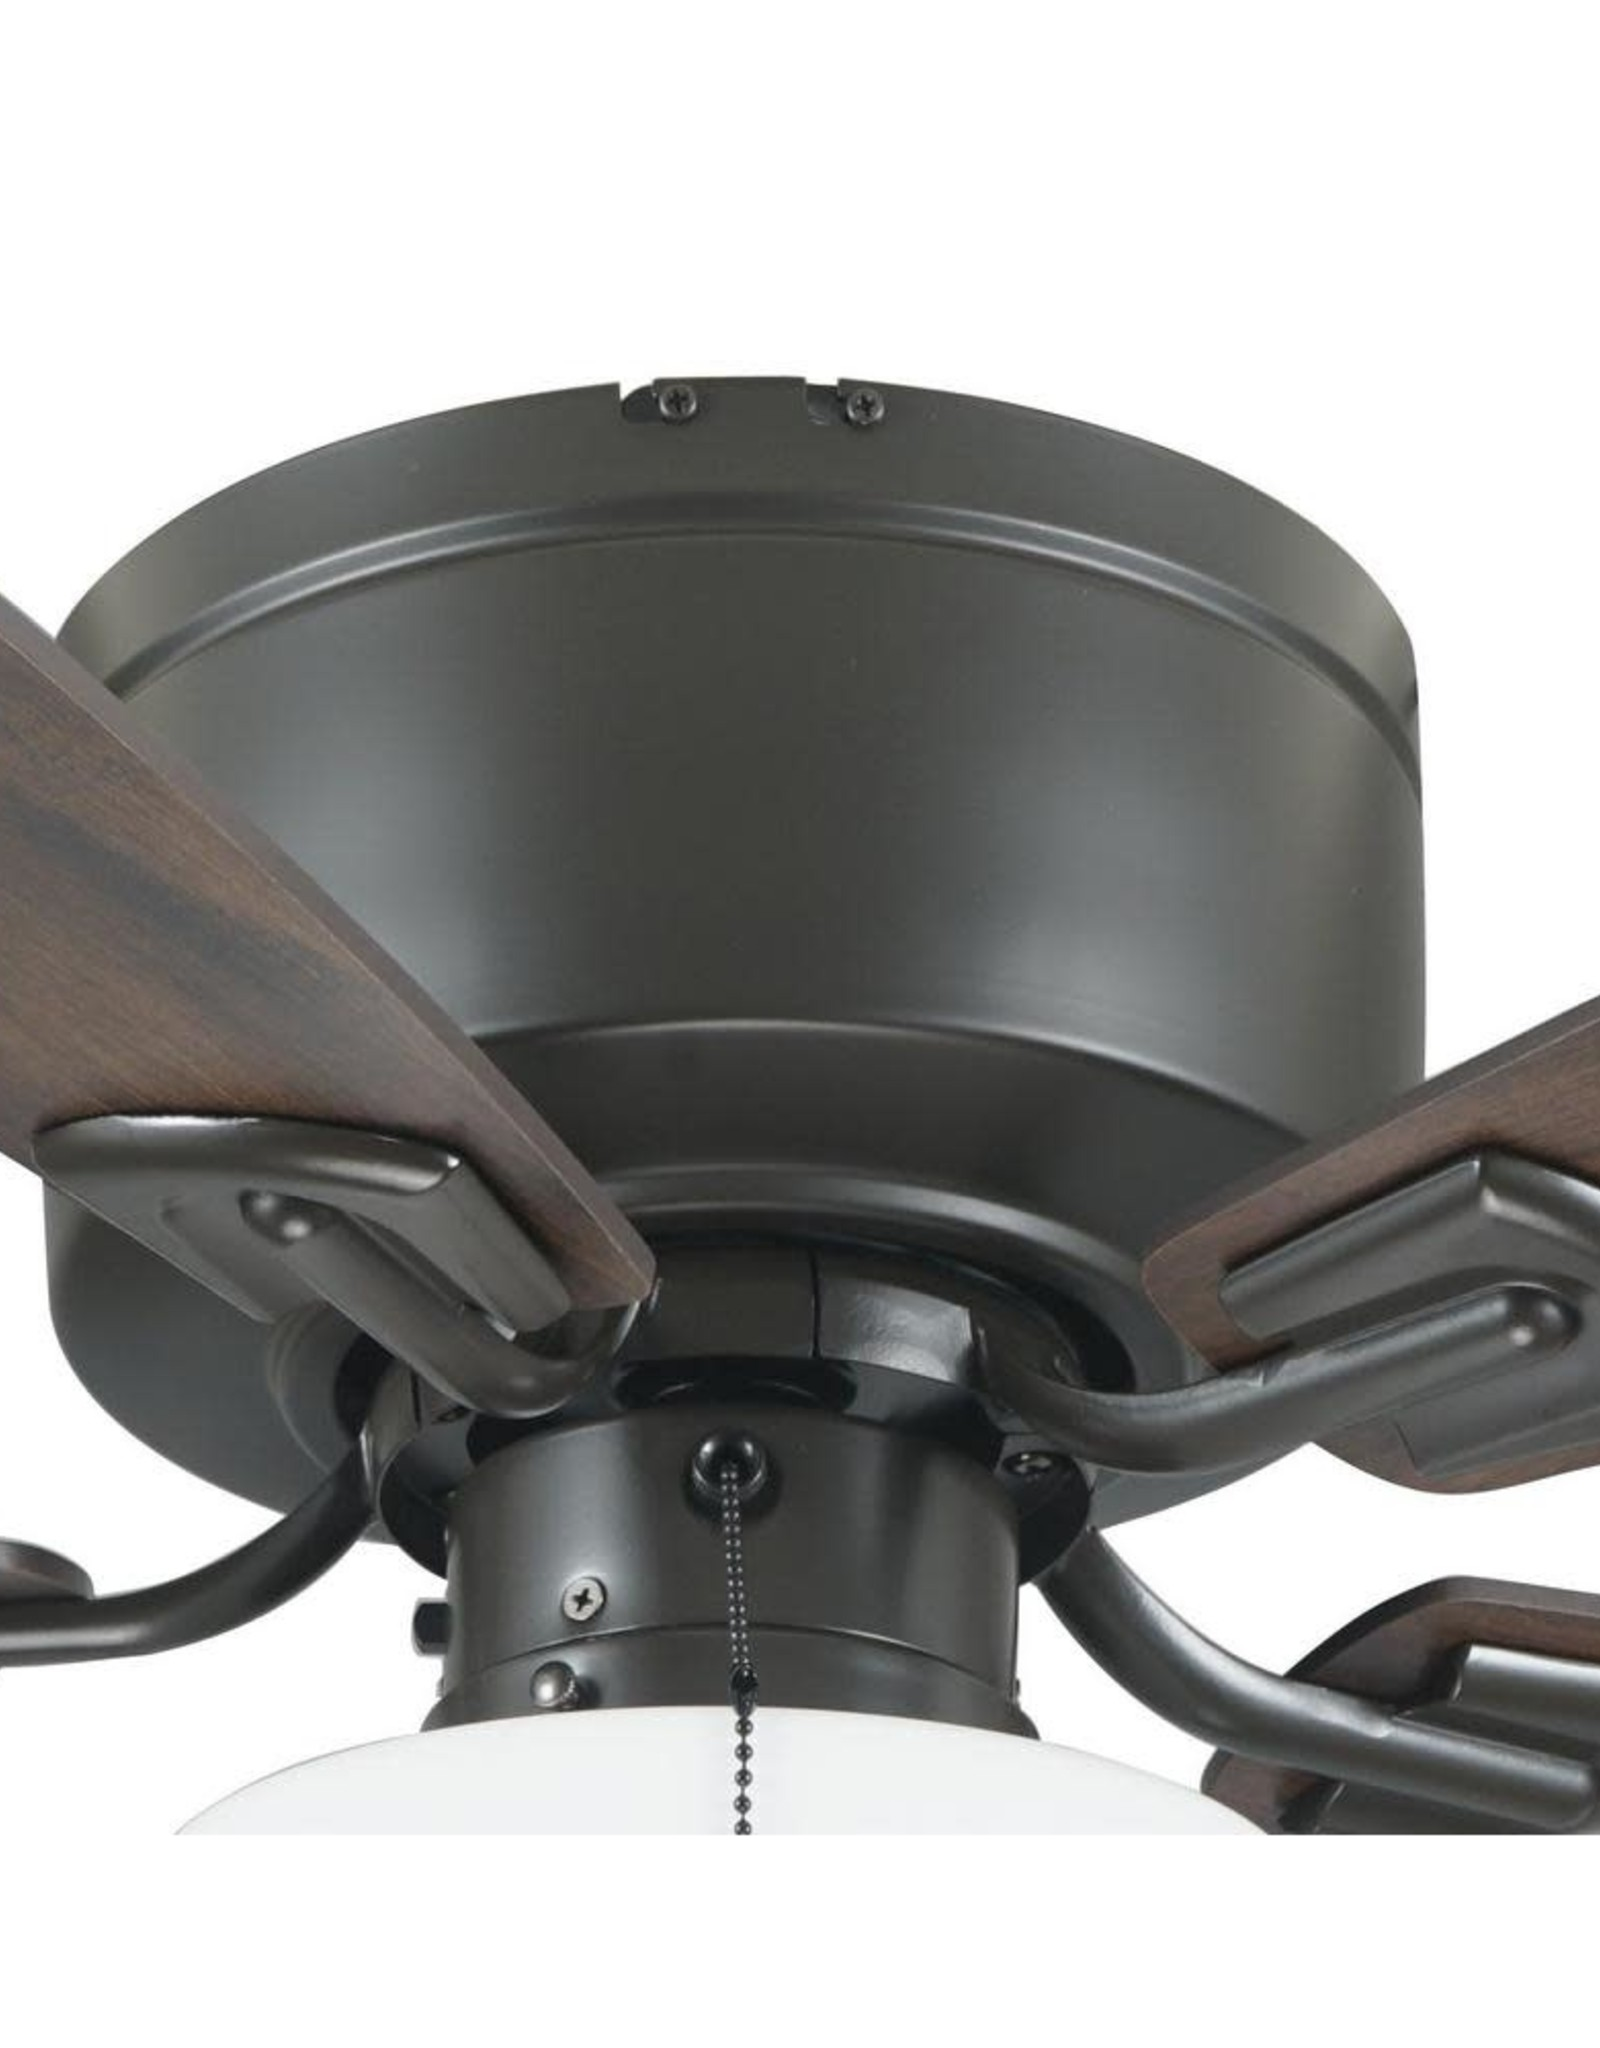 Bellina 42 in. Oil-Rubbed Bronze Ceiling Fan with LED Light Kit